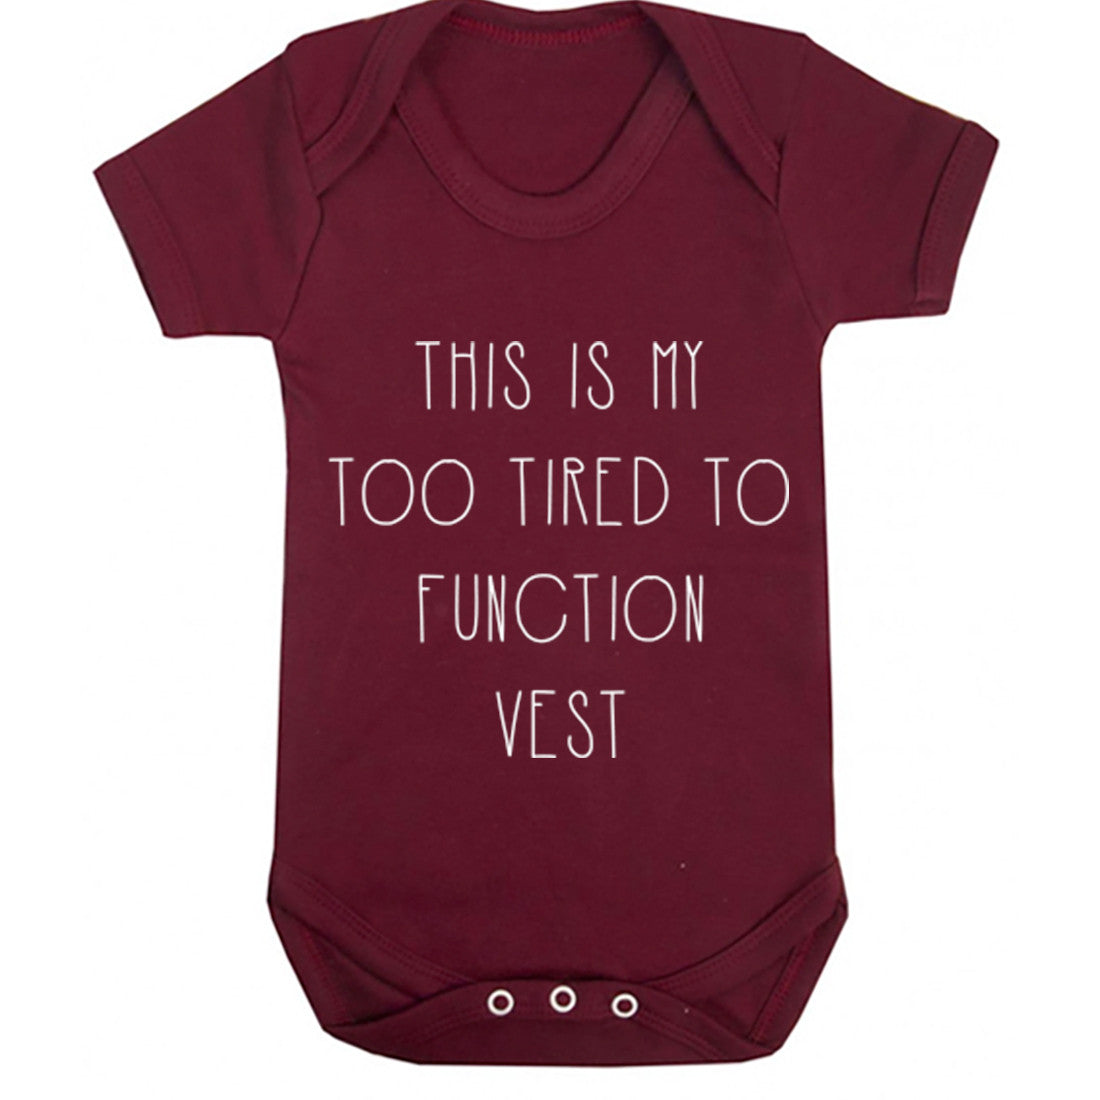 Too Tired To Function Baby Vest K0257 - Illustrated Identity Ltd.